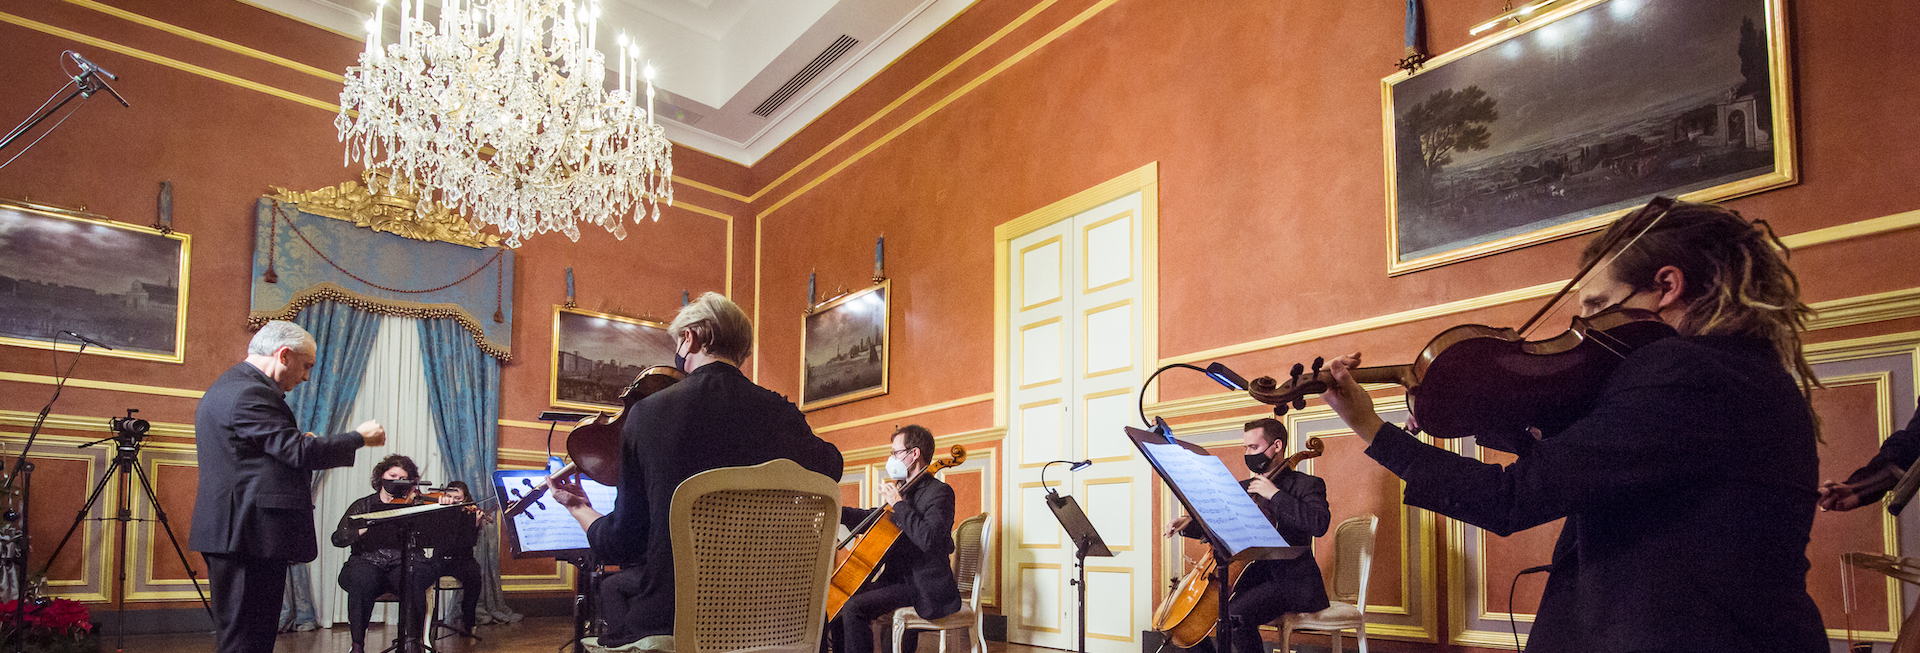 Chamber Friday productions by the Malta philharmonic orchestra